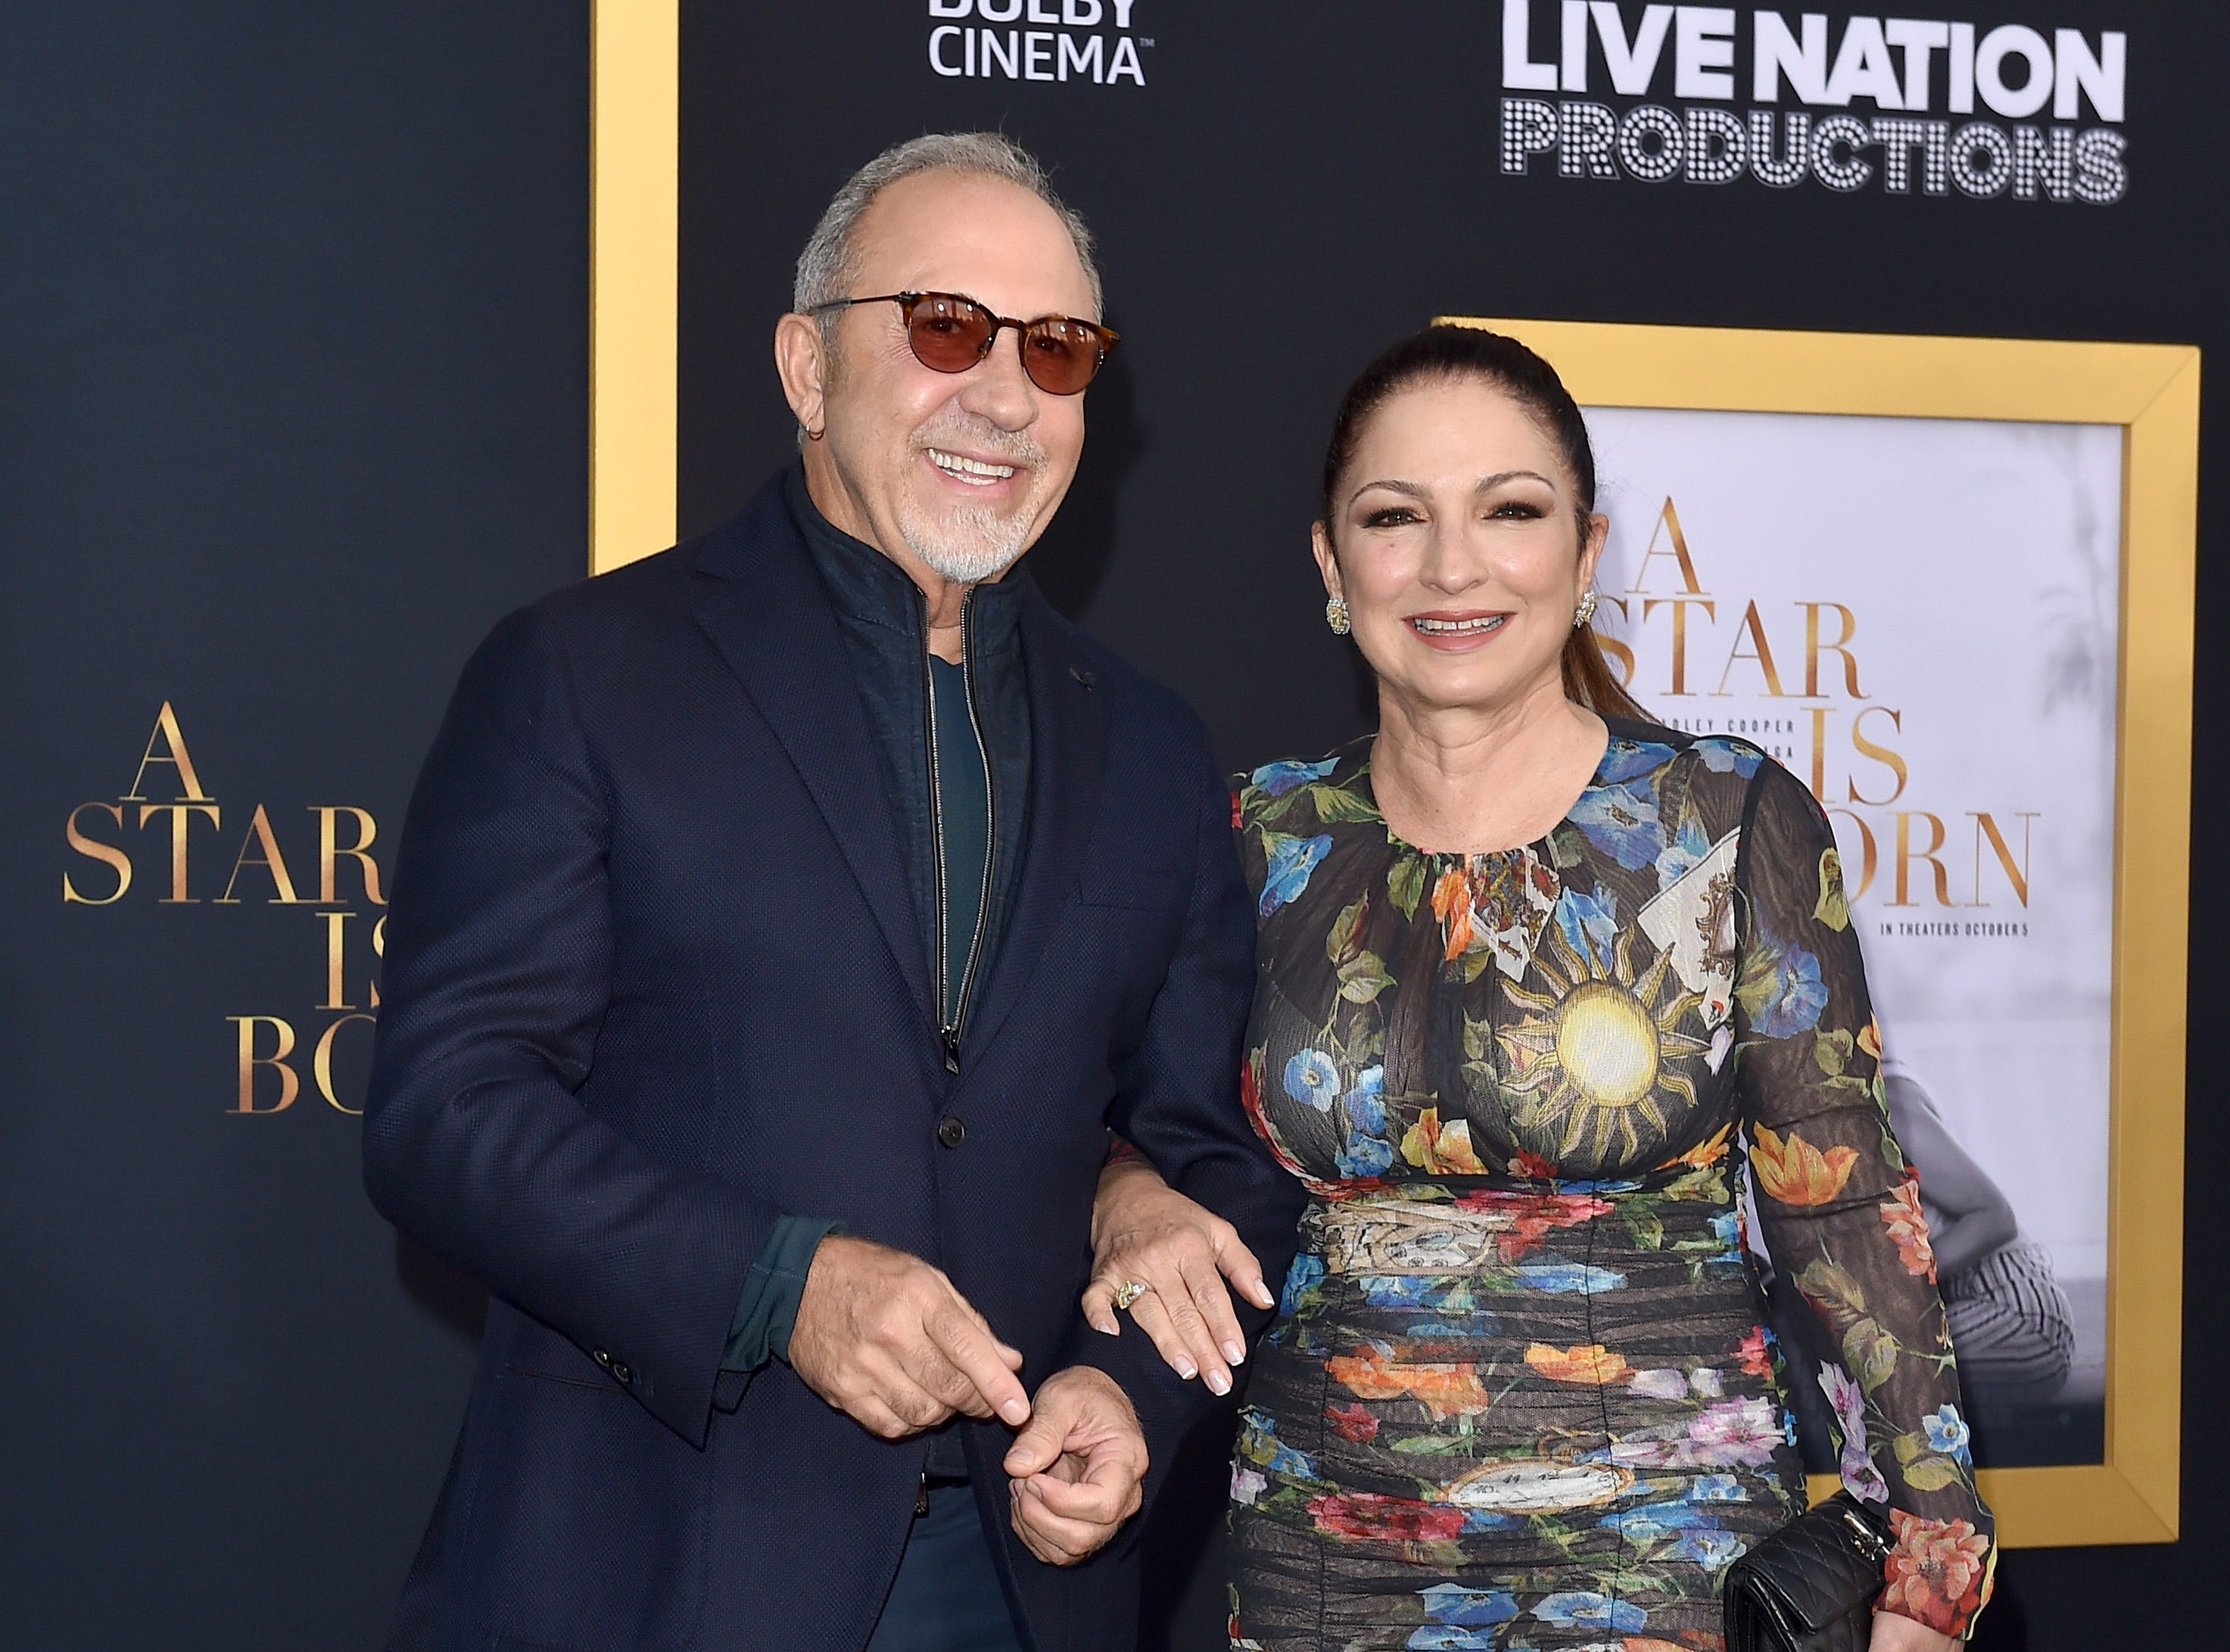 LOS ANGELES, CA - SEPTEMBER 24:  Emilio Estefan and Gloria Estefan attend the premiere of Warner Bros. Pictures' 'A Star Is Born' at The Shrine Auditorium on September 24, 2018 in Los Angeles, California.  (Photo by Axelle/Bauer-Griffin/FilmMagic) ORG XMIT: 775229470 ORIG FILE ID: 1039815706